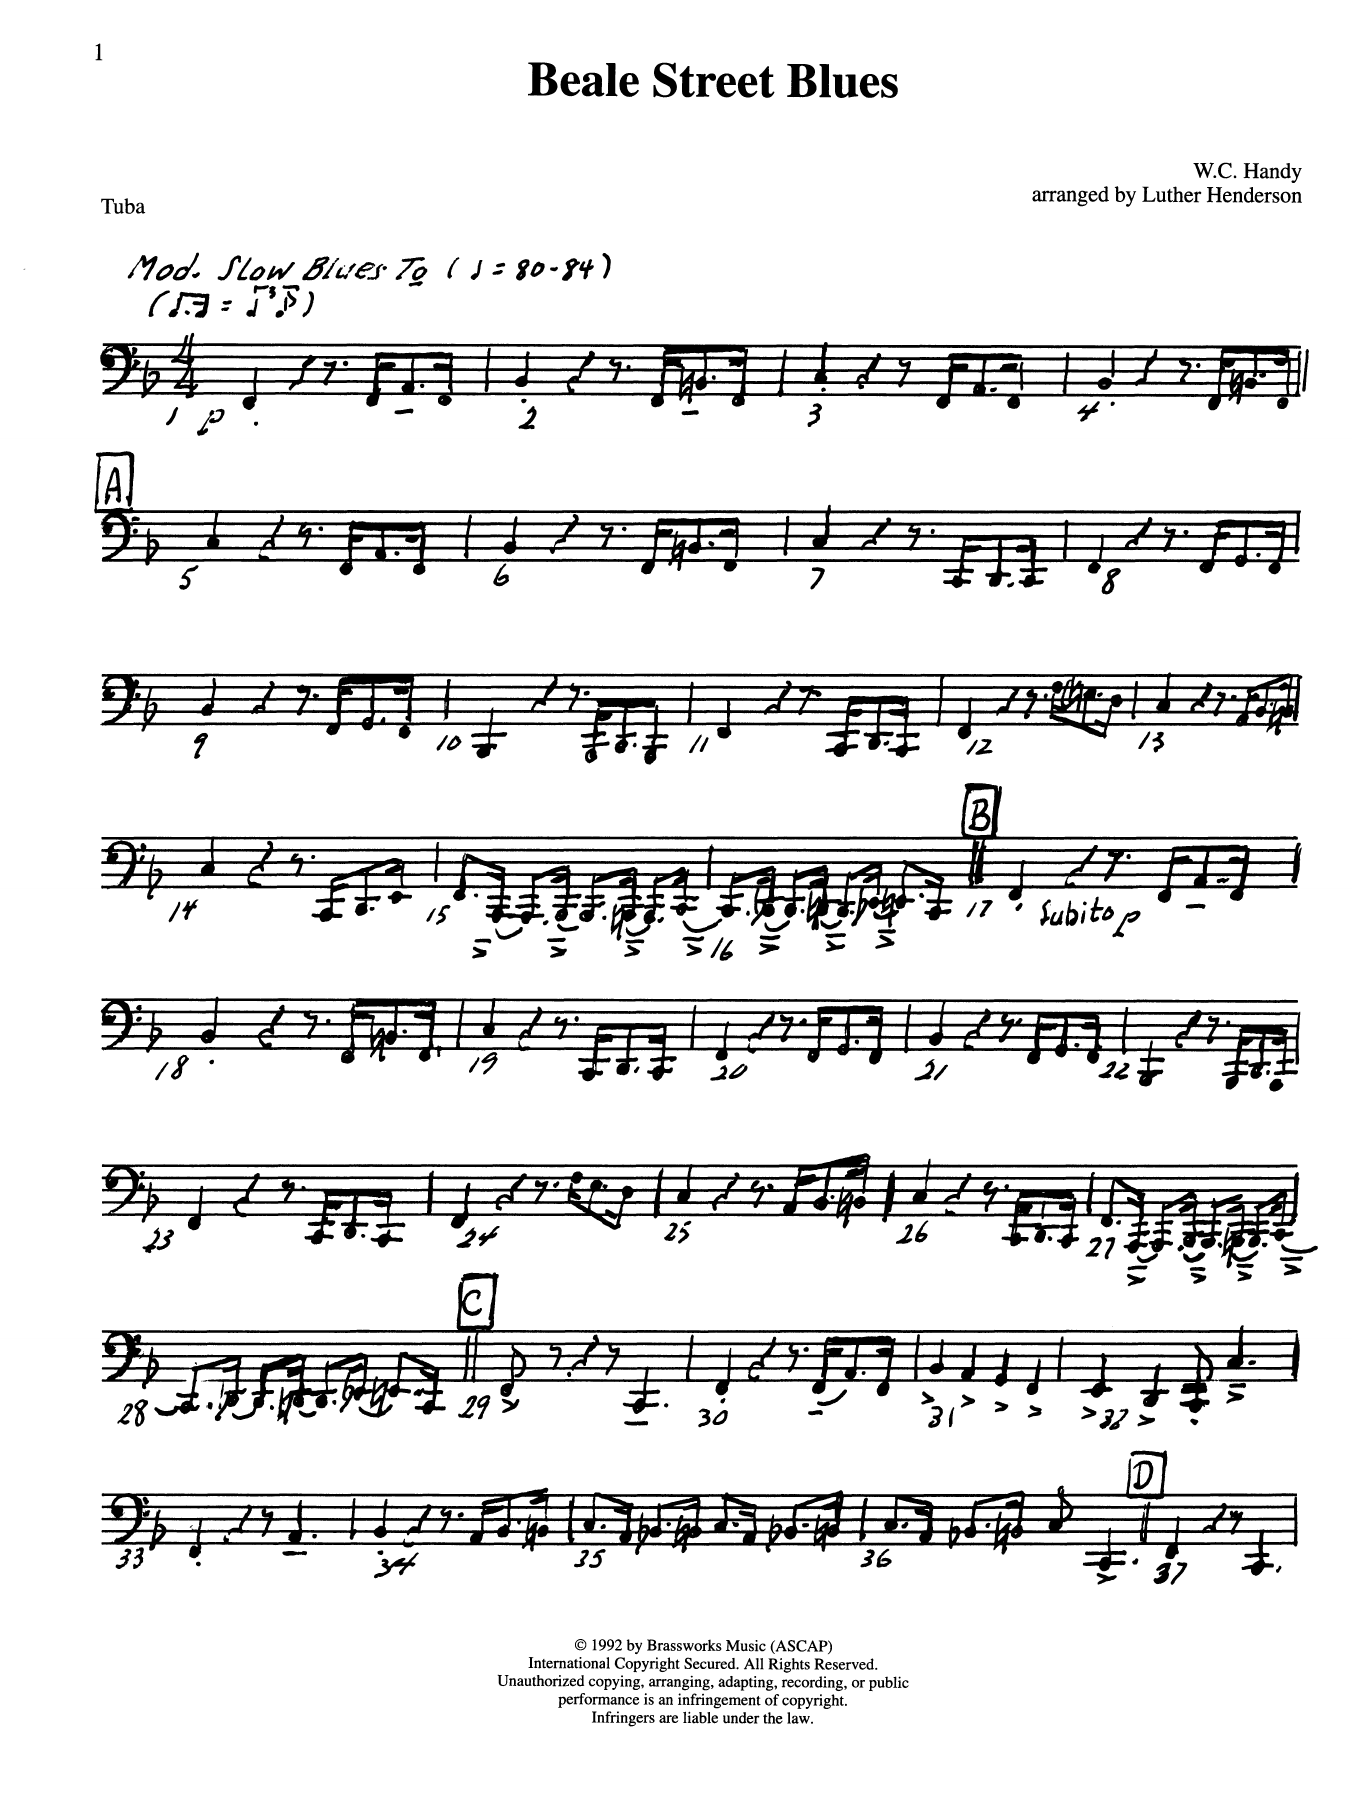 Beale Street Blues - Tuba Sheet Music